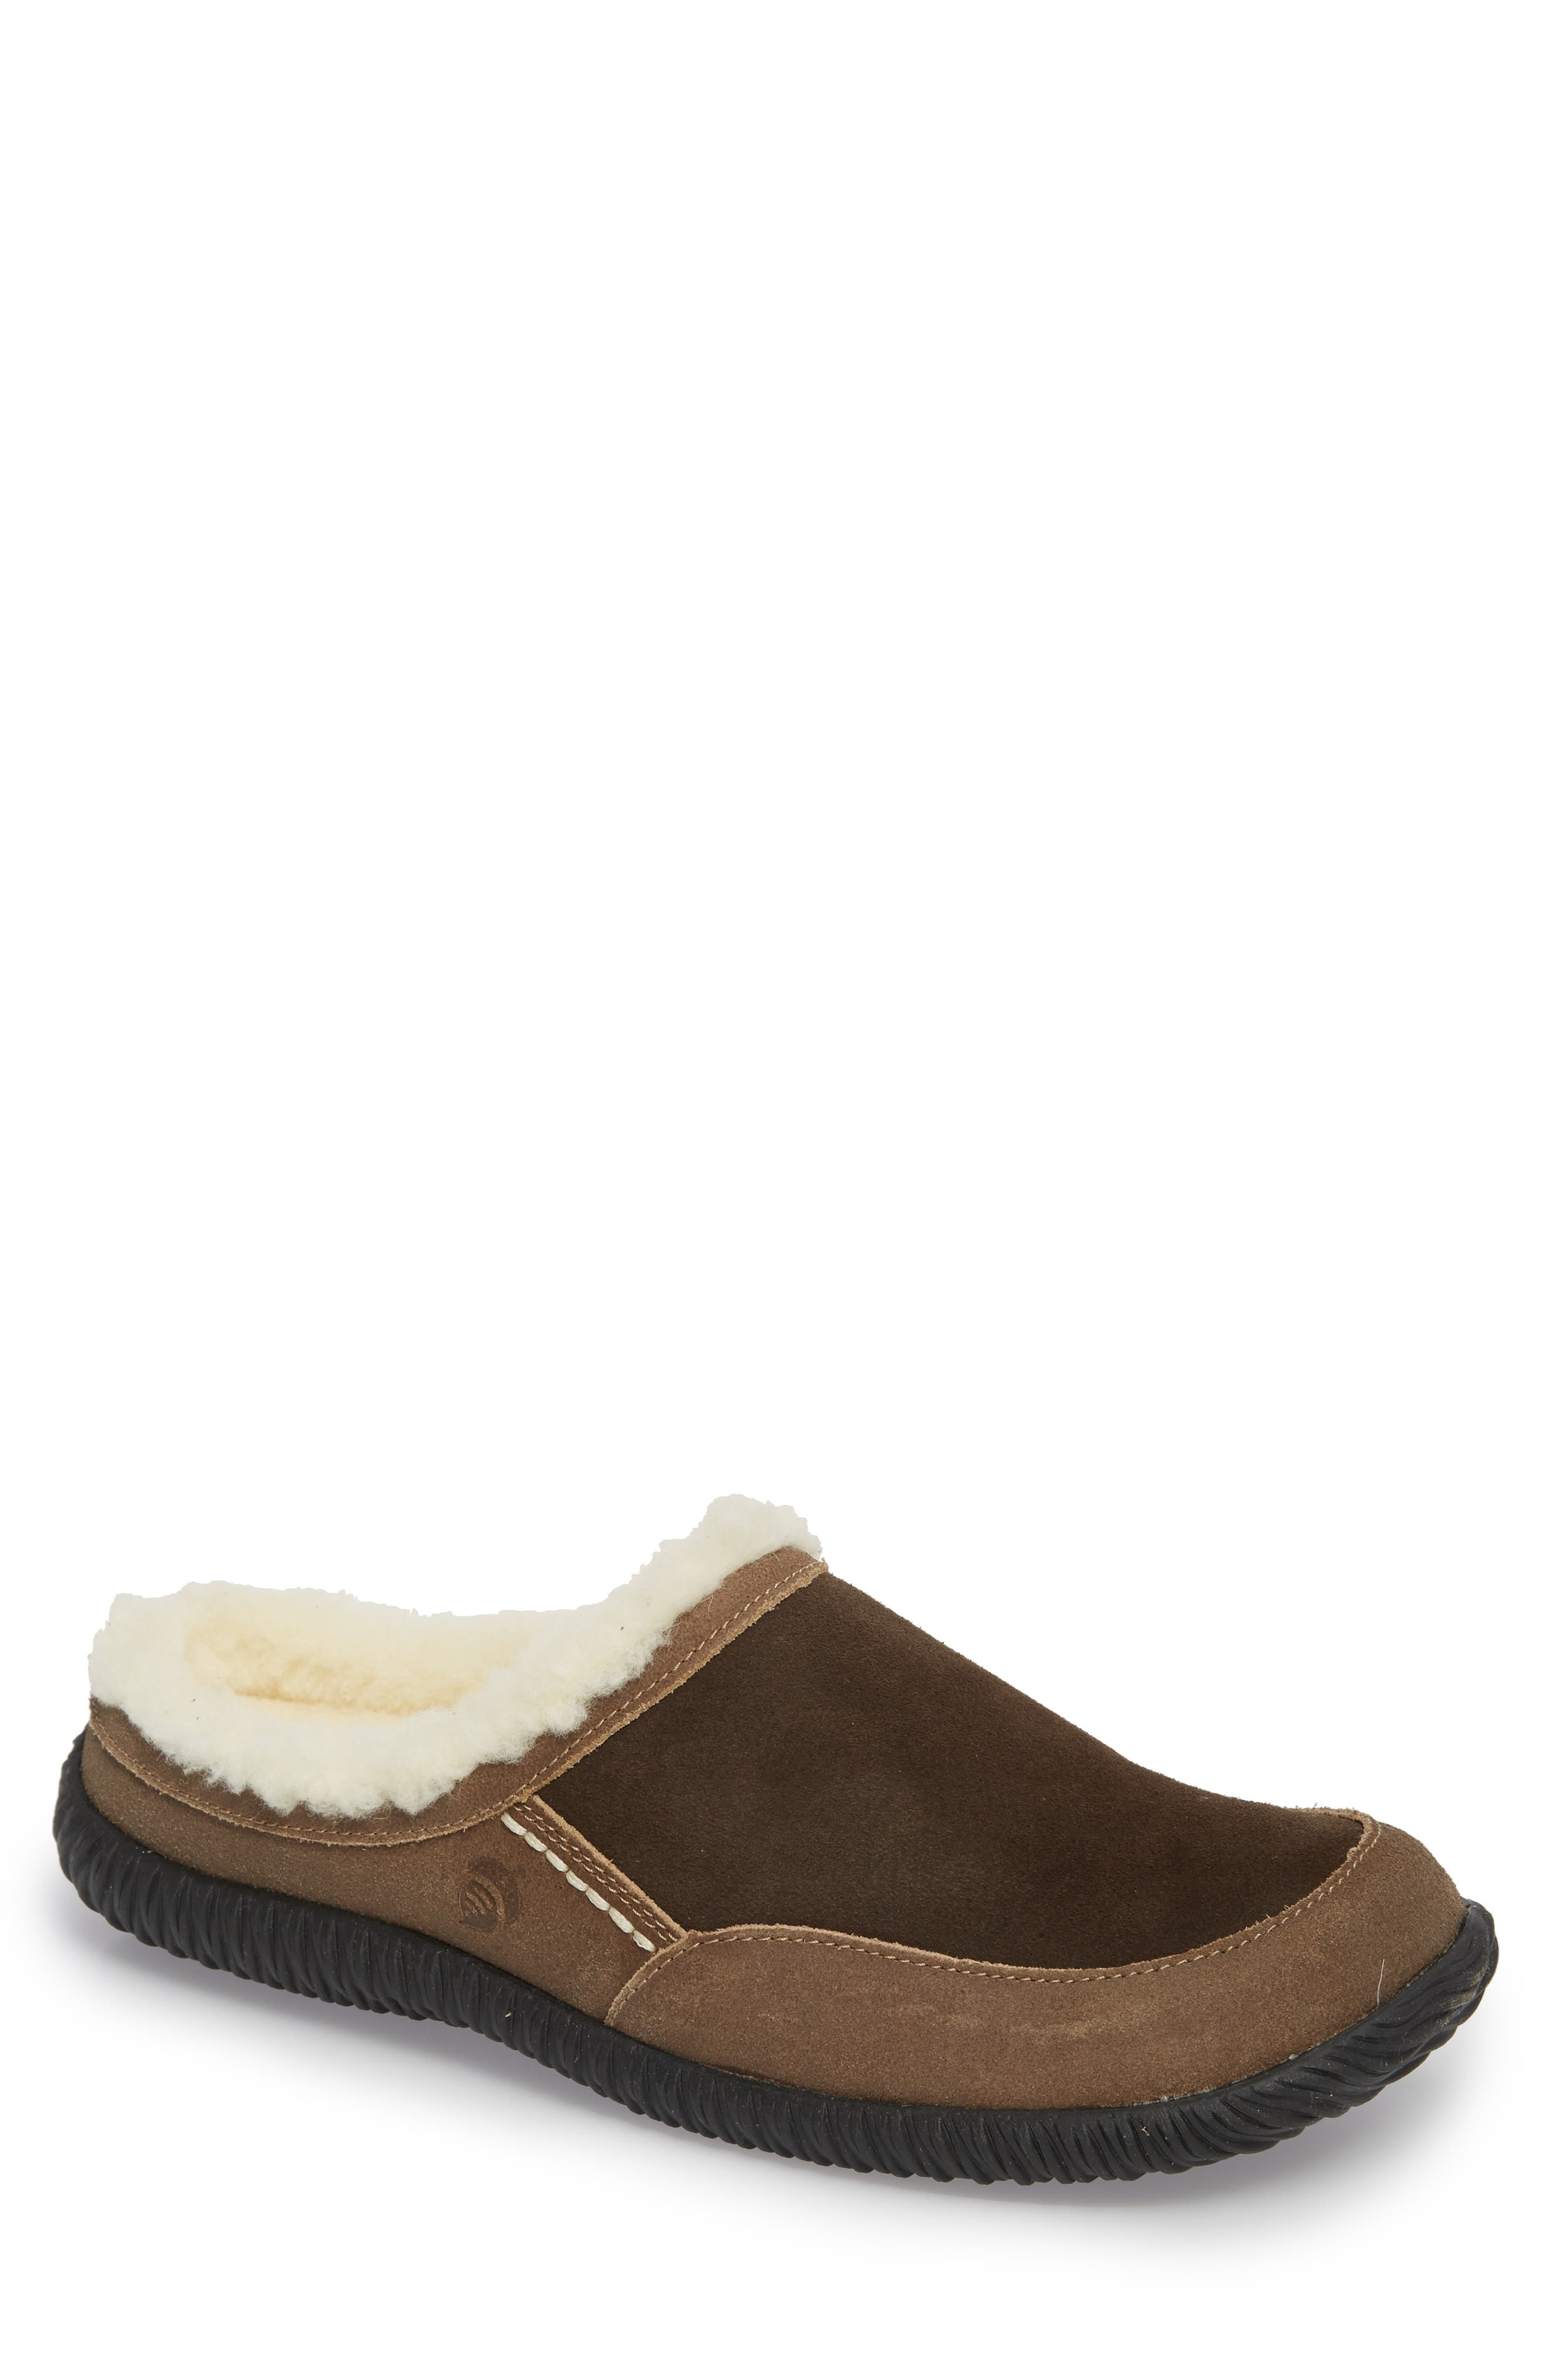 Acorn 'Rambler' Mule Slipper (Men)